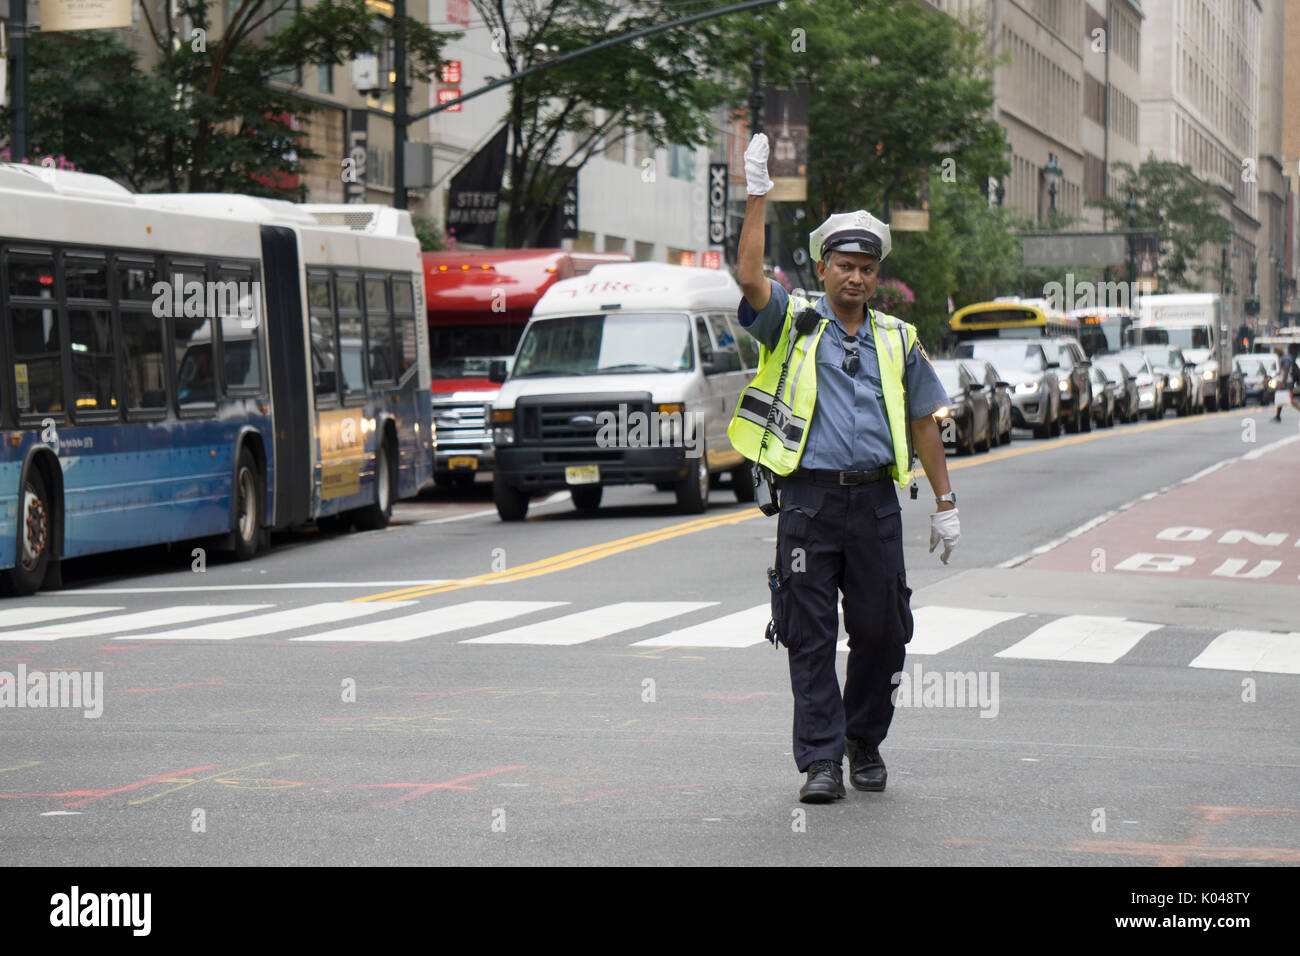 A Bangladeshi police officer directing automobile traffic on Broadway and 34th Street, Herlad Square, in Manhattan, New York City. - Stock Image